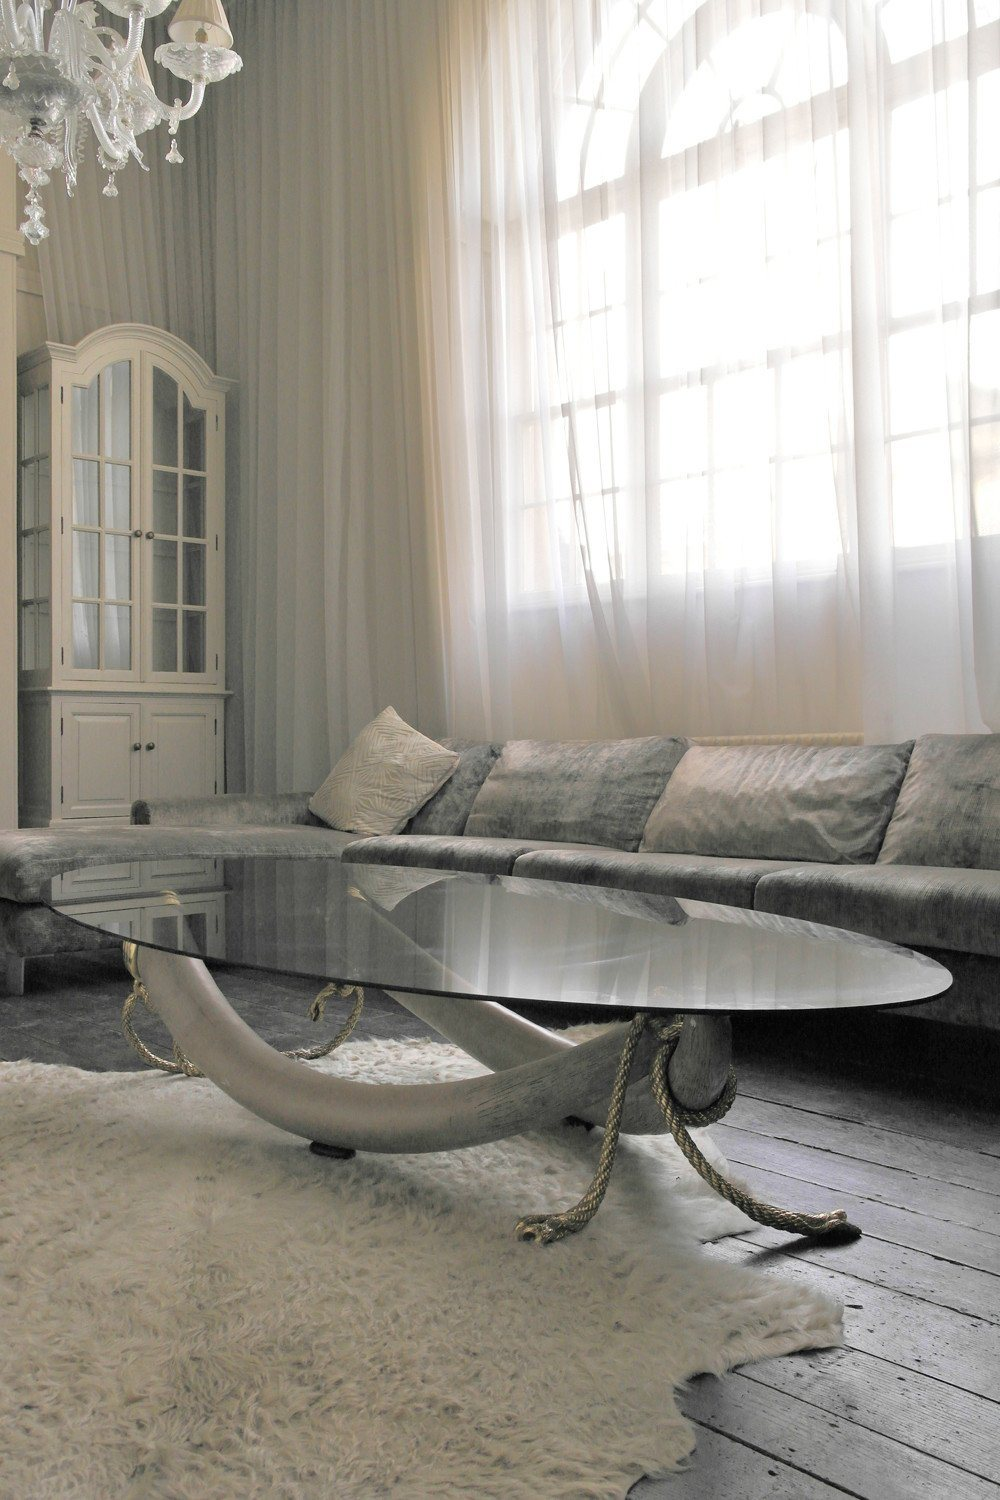 Large Smoke Glass & Brass Tusk Base Coffee Table - A Modern Grand Tour